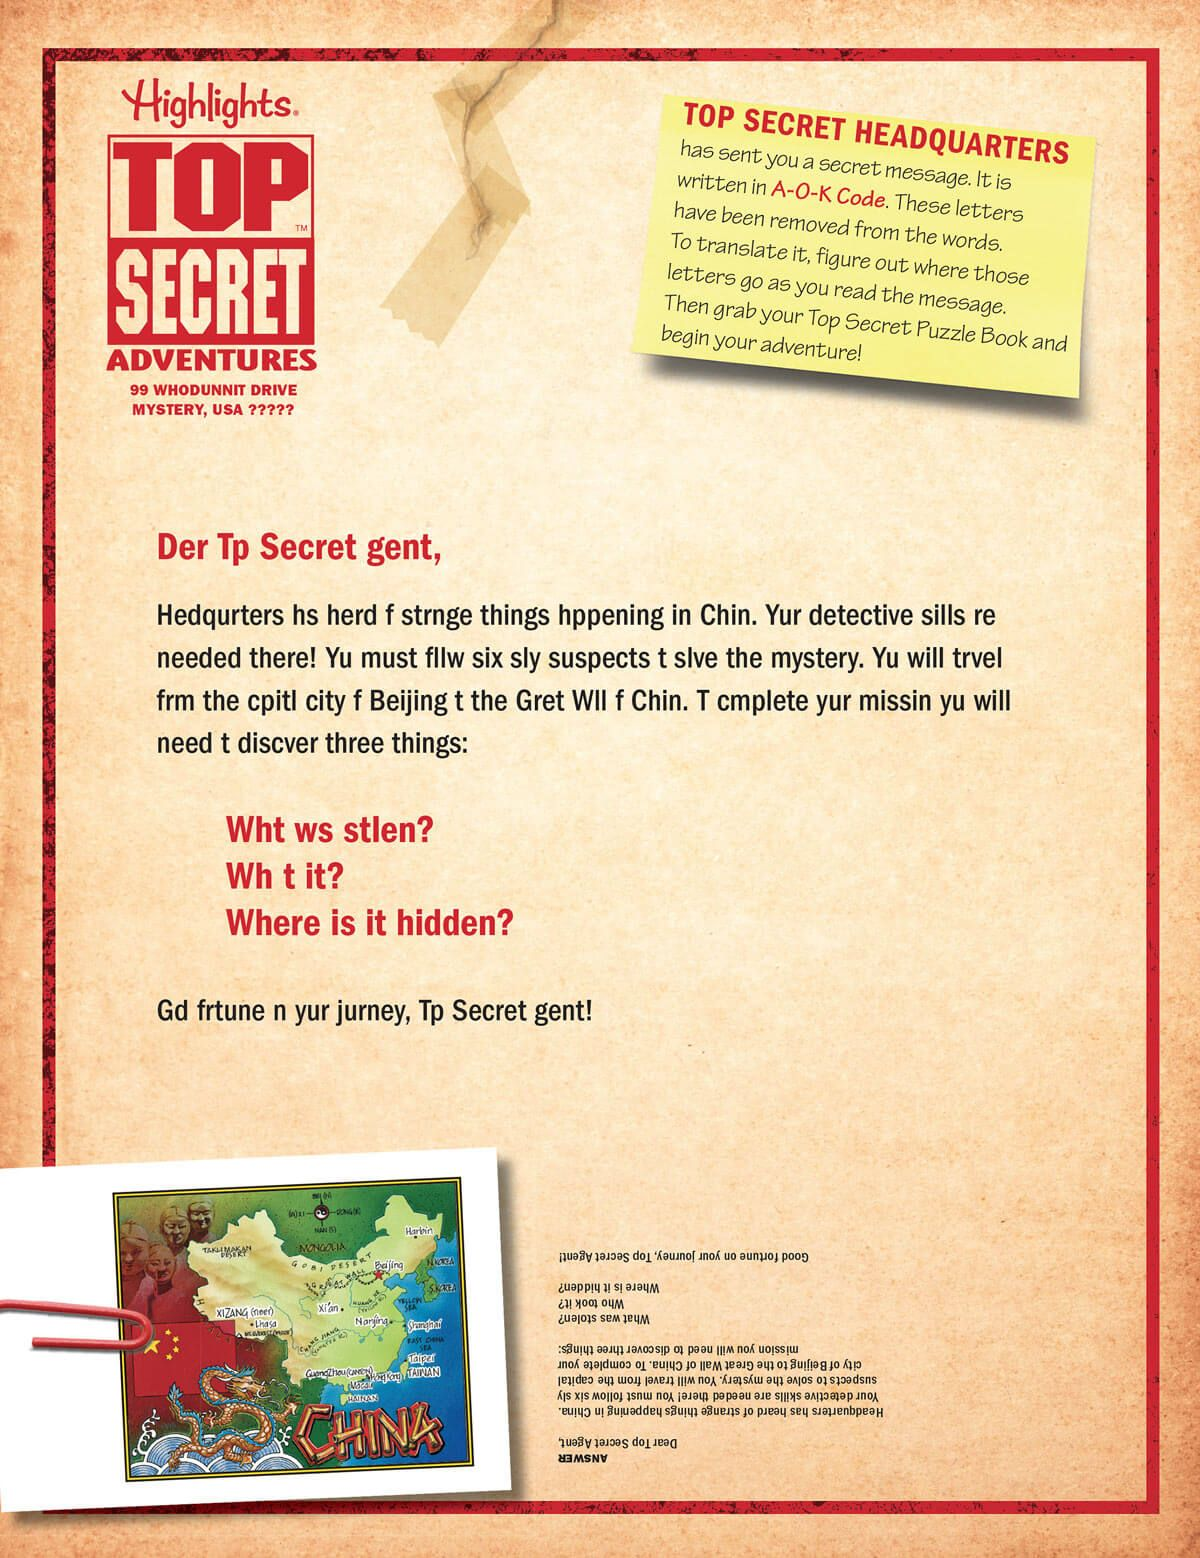 Top Secret Adventures China Mission Letter Opened